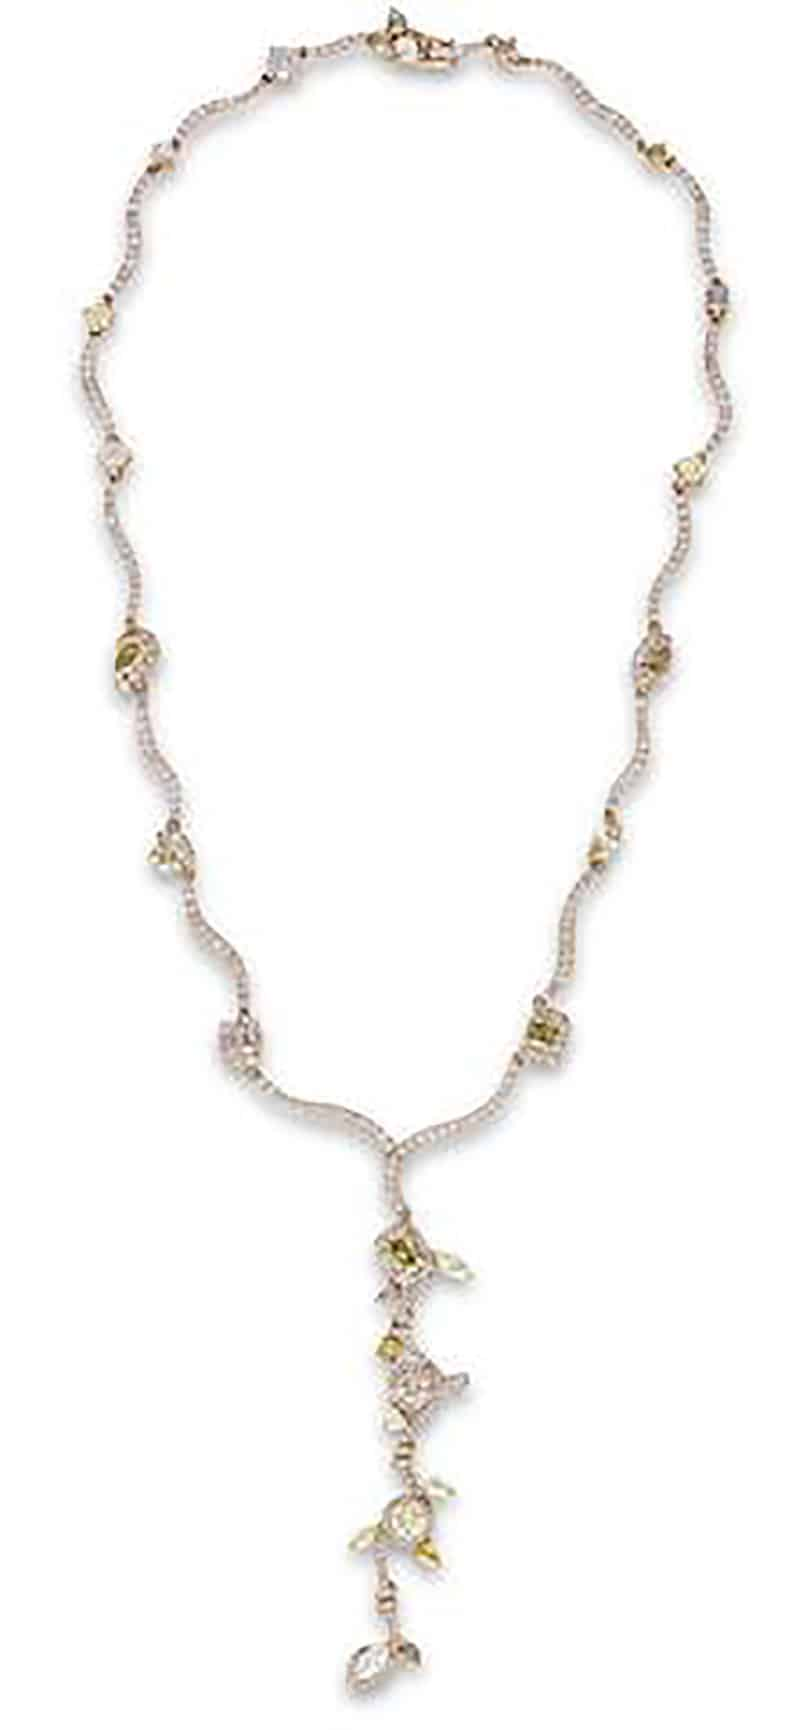 LOT 651 - A FANCY COLOURED DIAMOND AND DIAMOND NECKLACE